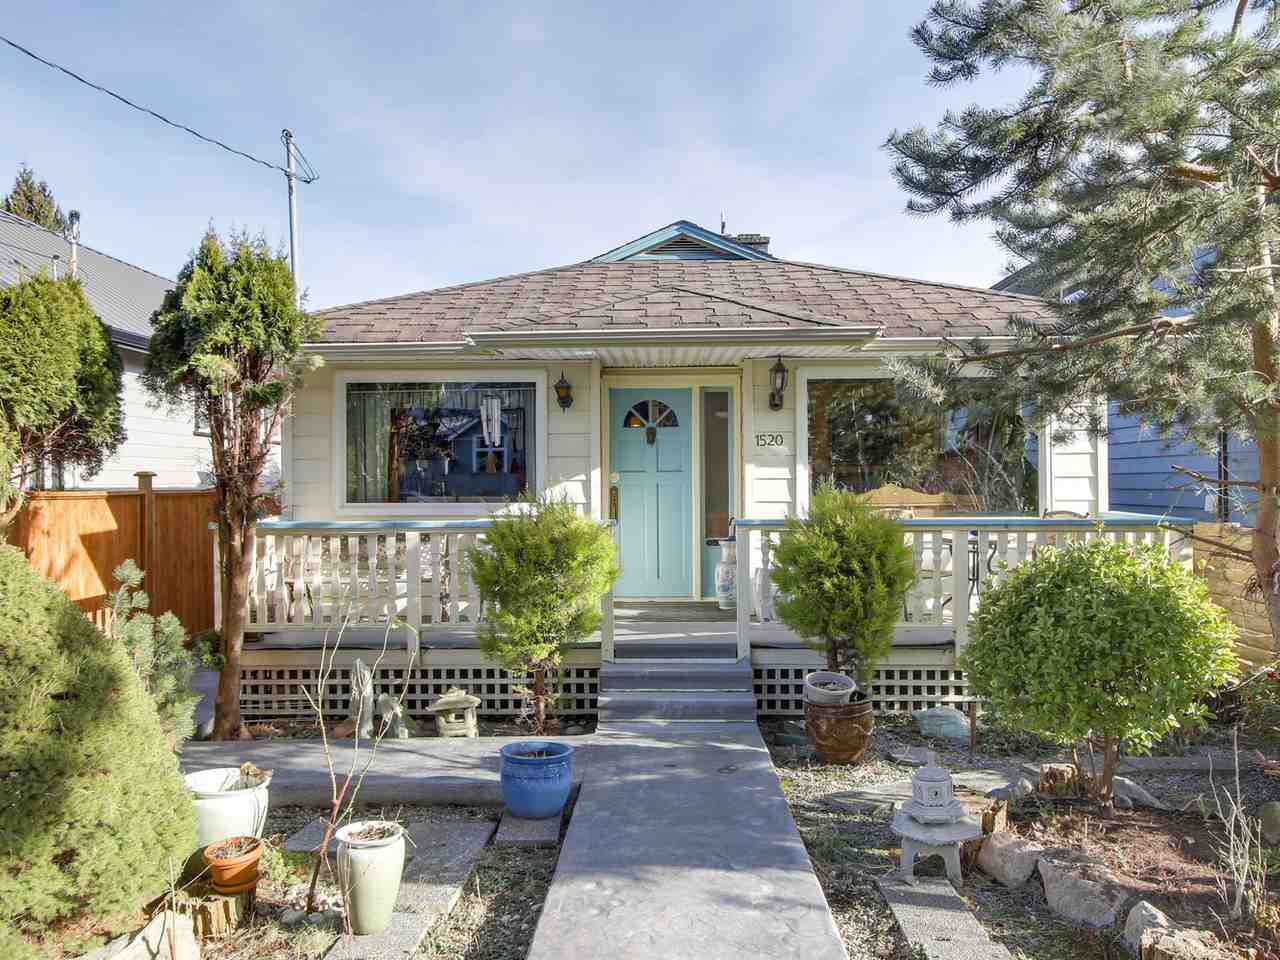 Main Photo: 1520 MACGOWAN Avenue in North Vancouver: Norgate House for sale : MLS®# R2137032